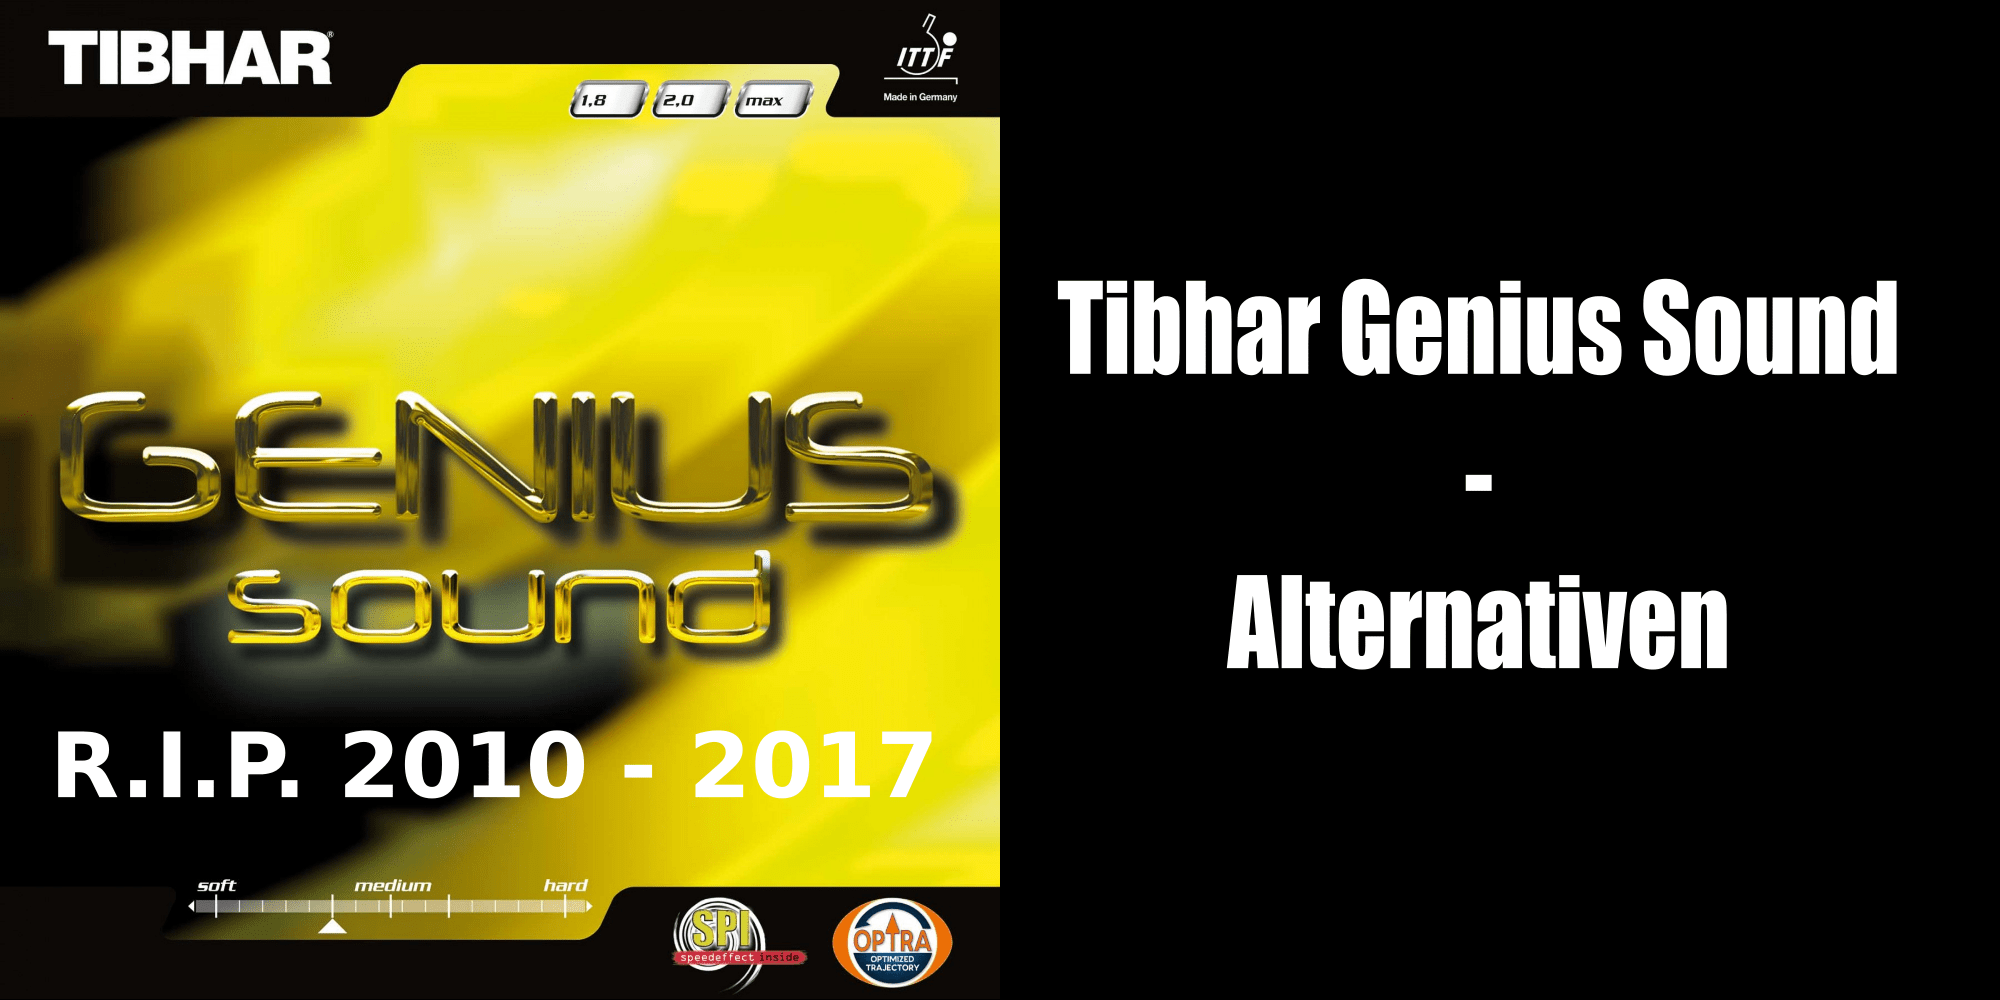 Tibhar Genius Sound Alternativen